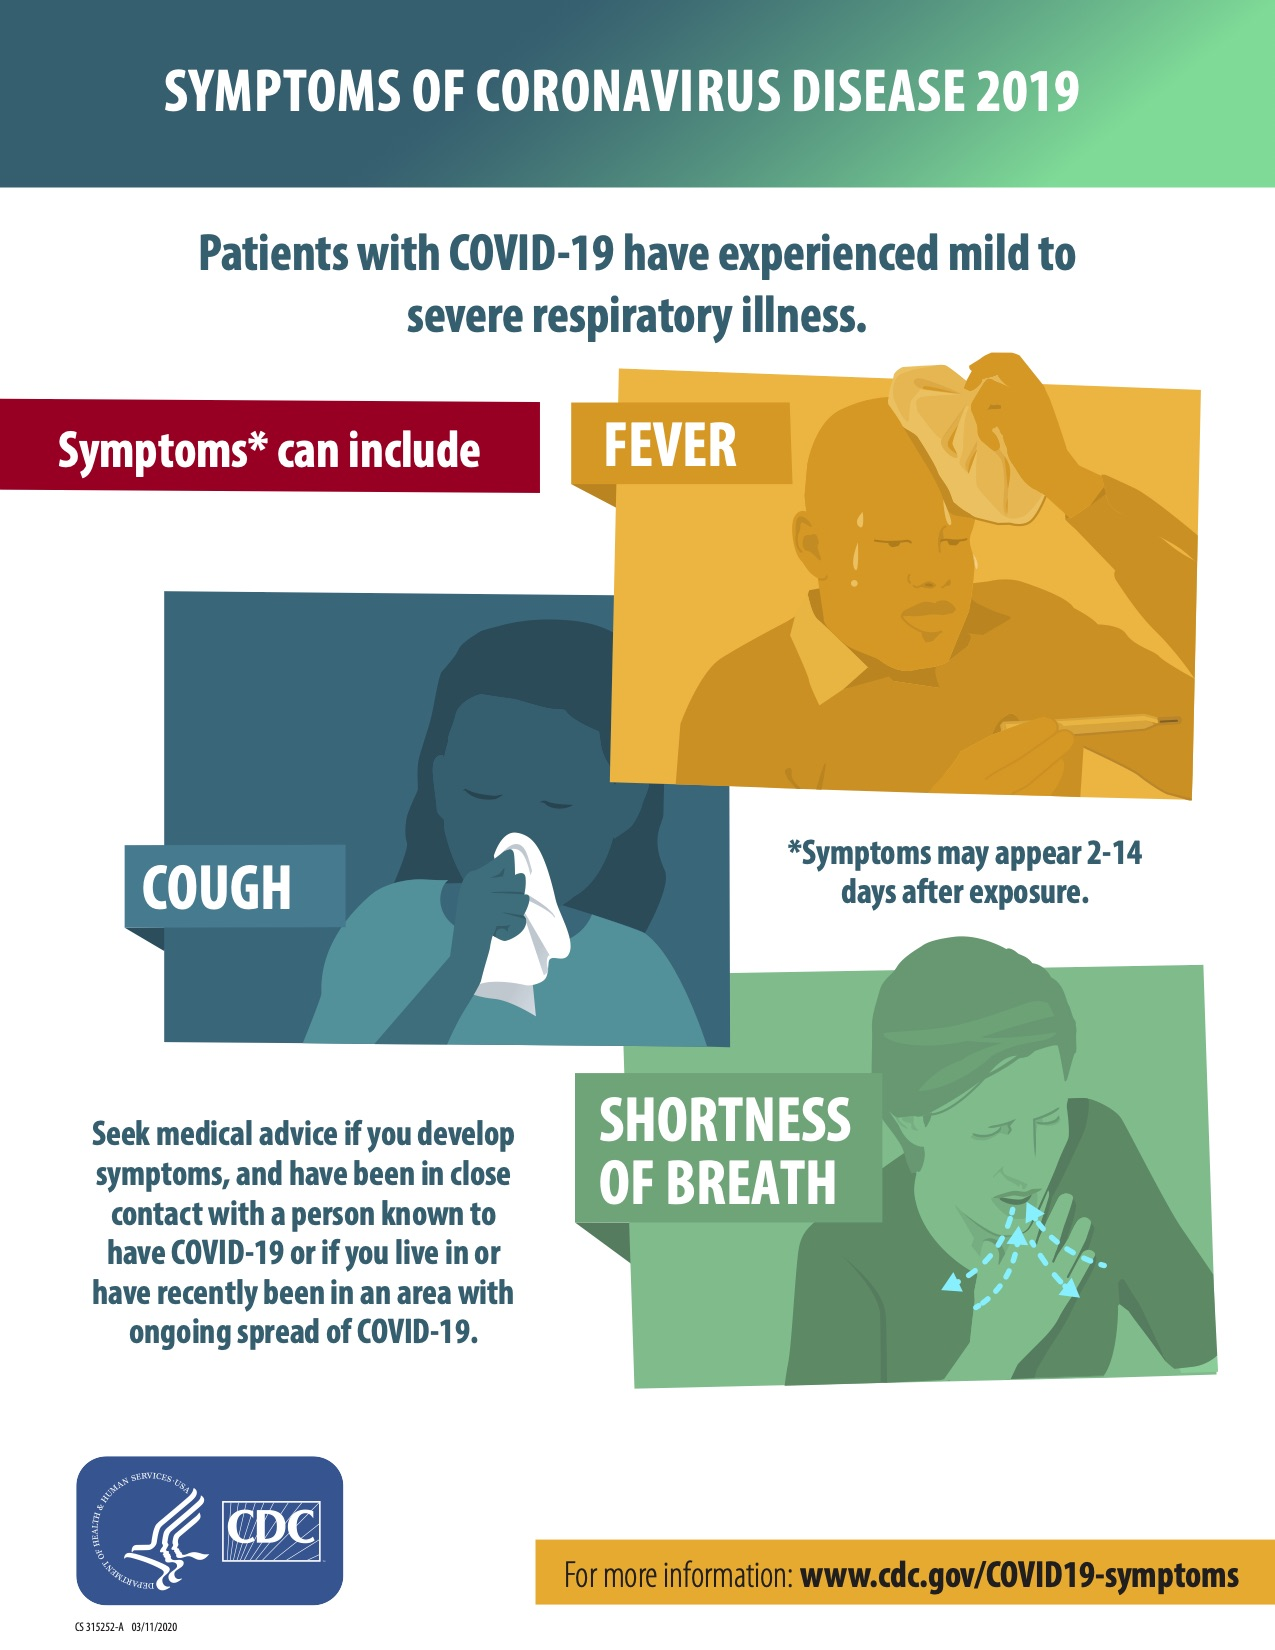 CDC List of COVID19-symptoms